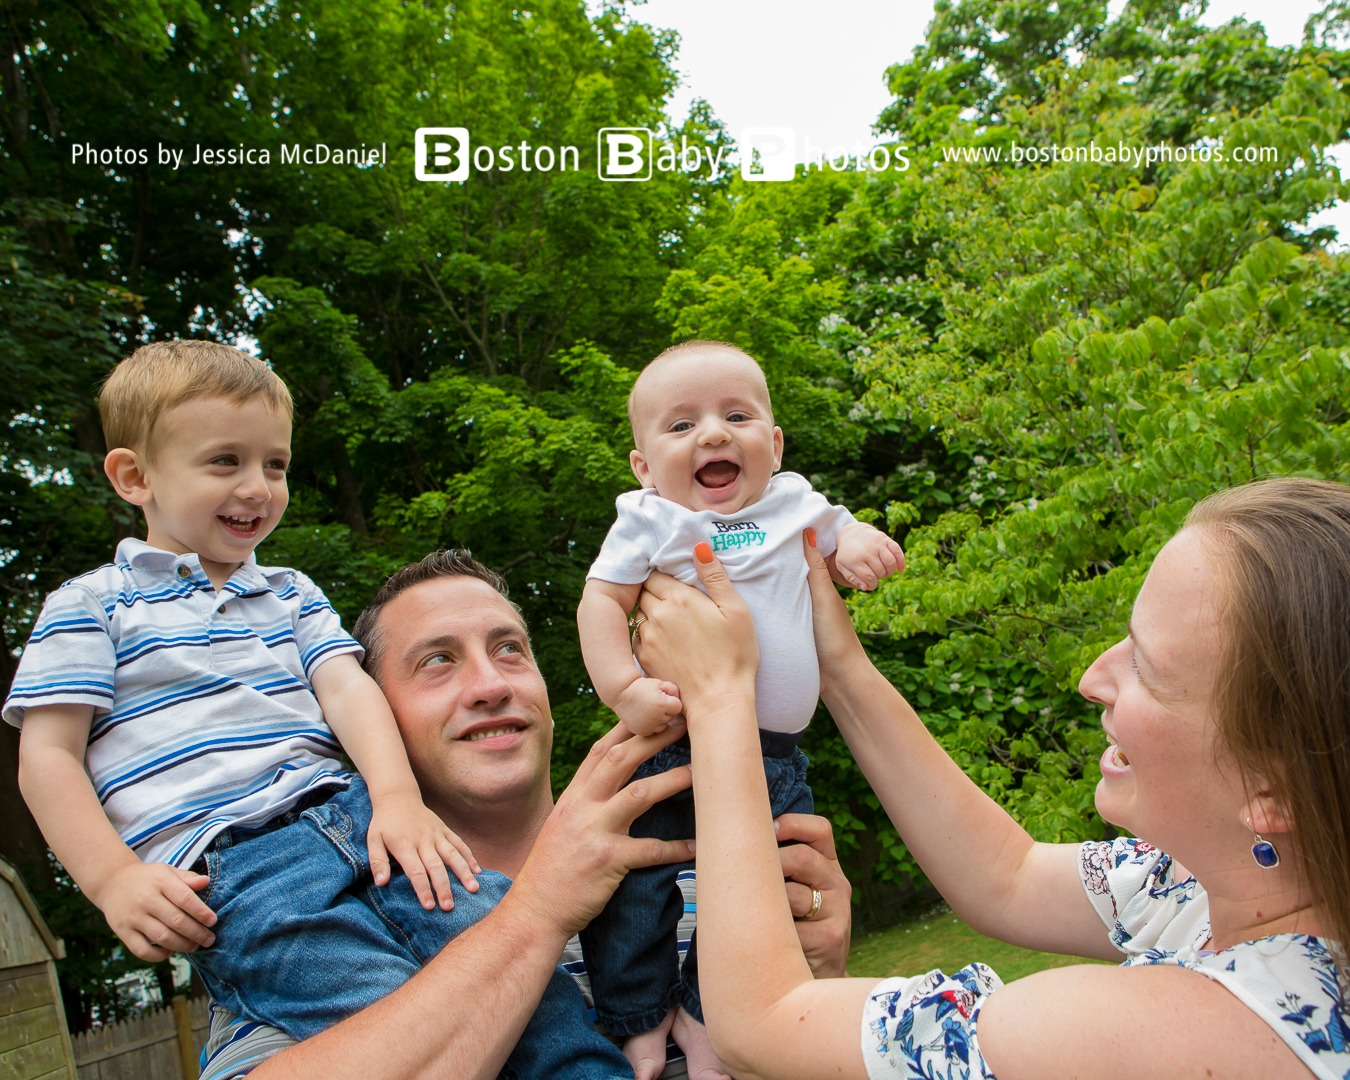 Rockland, MA: Big family + newborn photoshoot